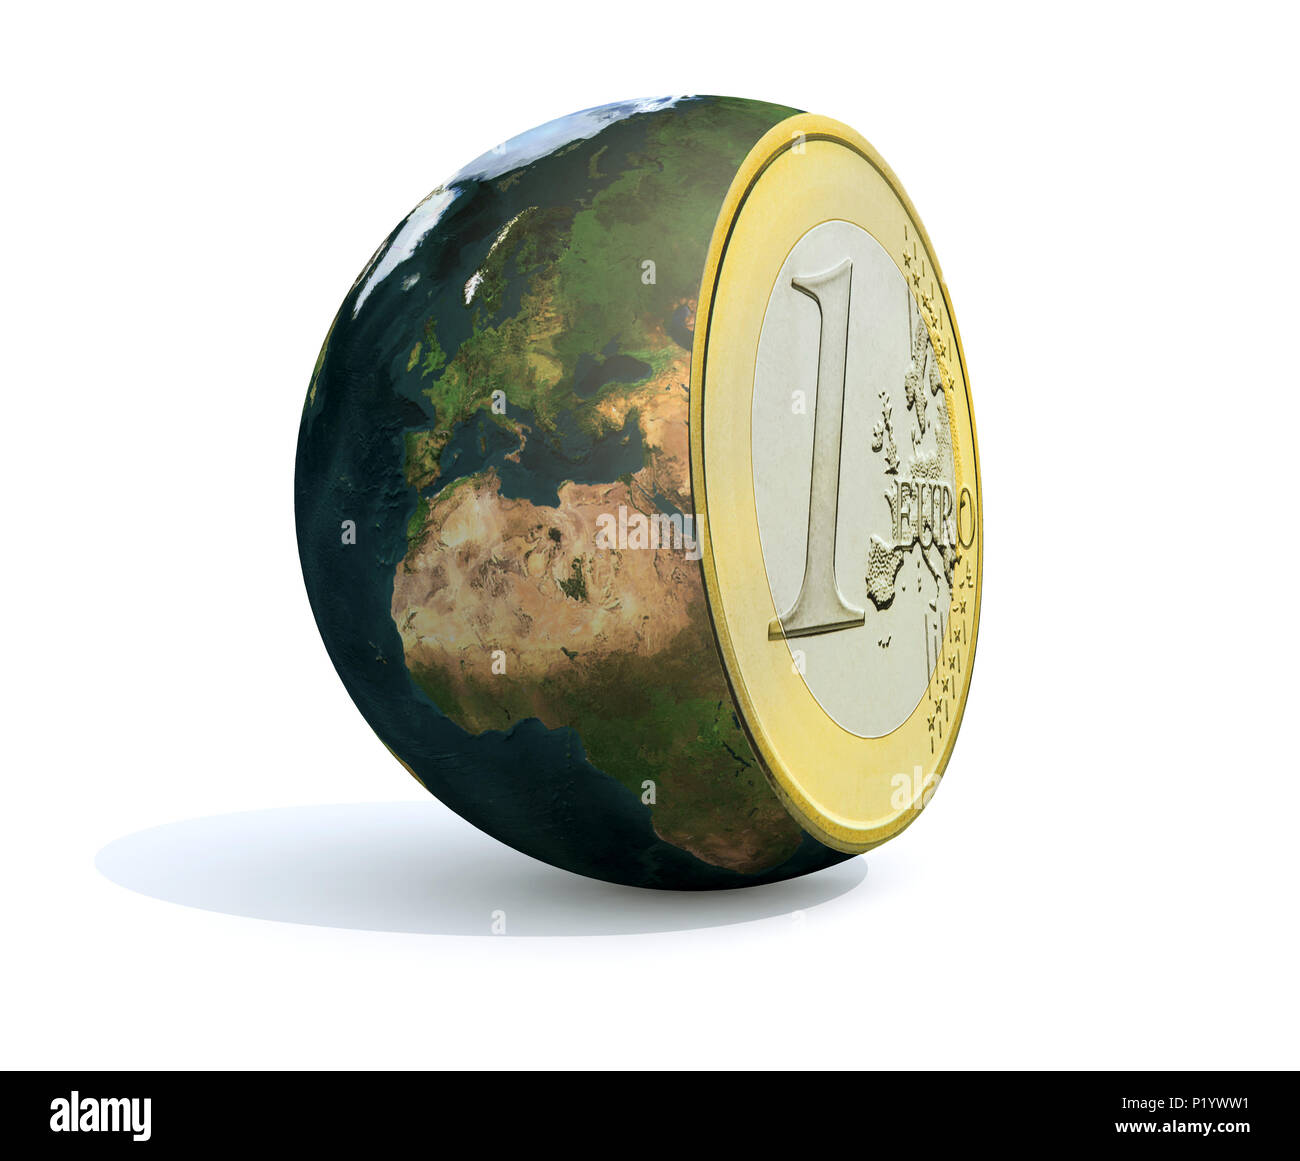 the world sliced and euro coin inside, 3d illustration - Stock Image